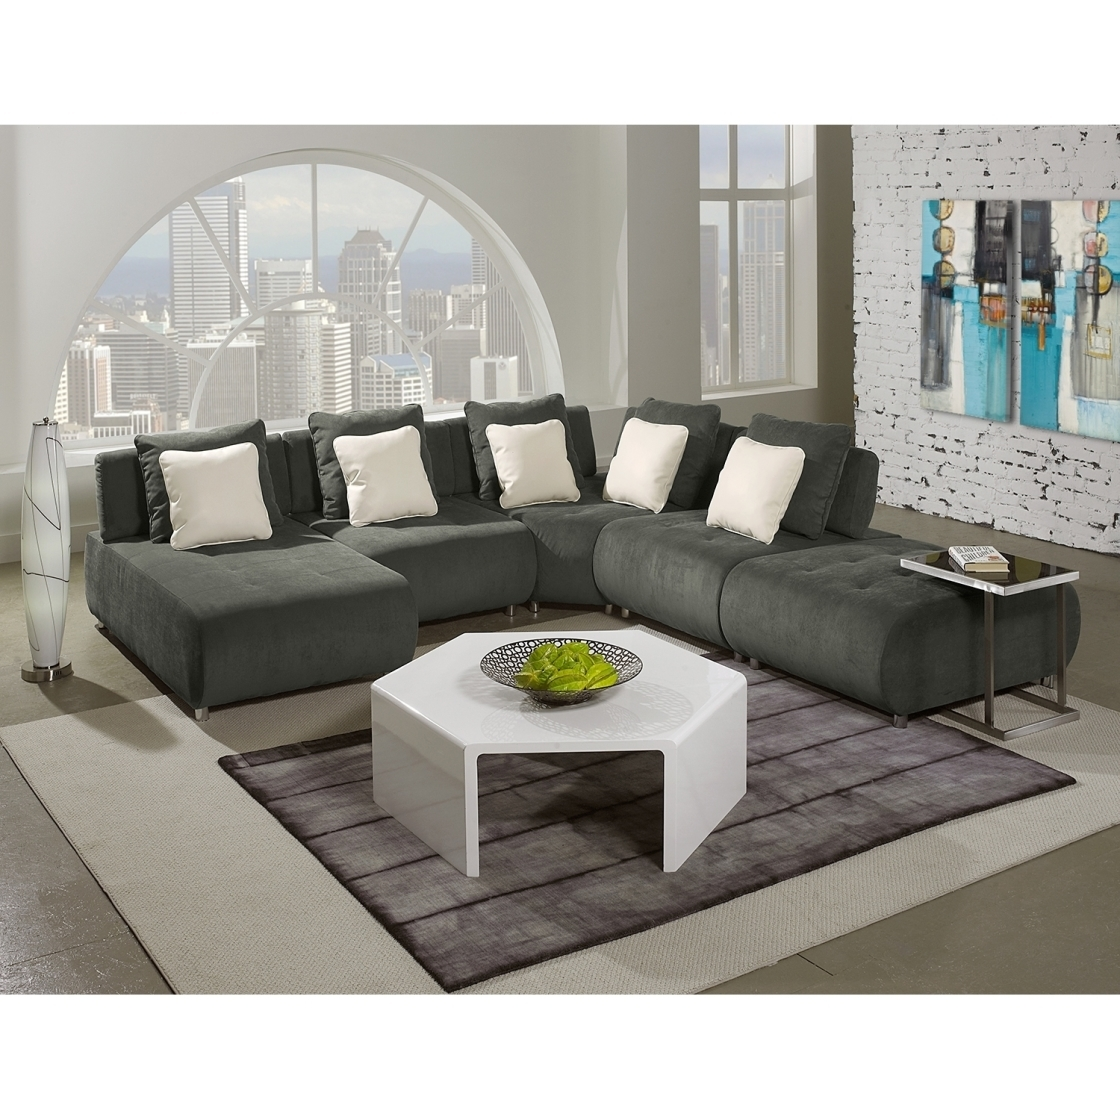 Latest Trend Of Small U Shaped Sectional Sofa 66 For Sectional Sofa Pertaining To Small U Shaped Sectional Sofas (View 4 of 10)